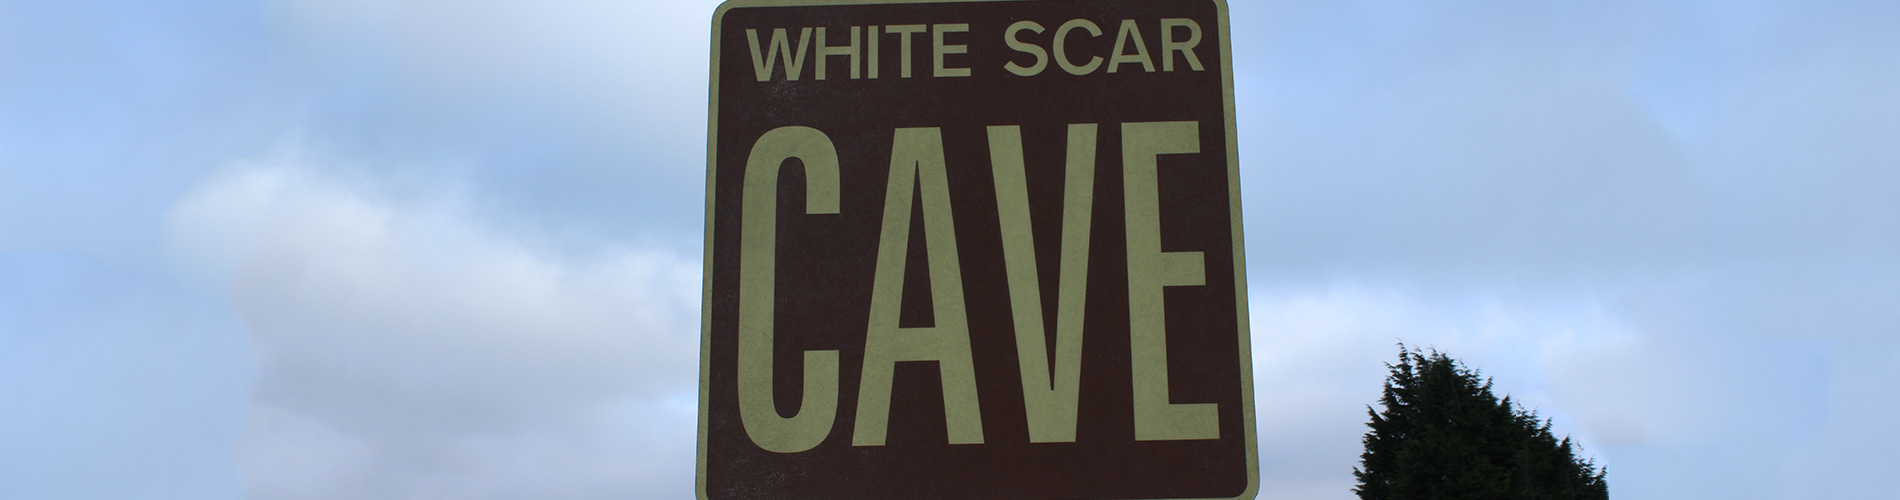 Visit White Scar Caves during your stay at Hipping Hall